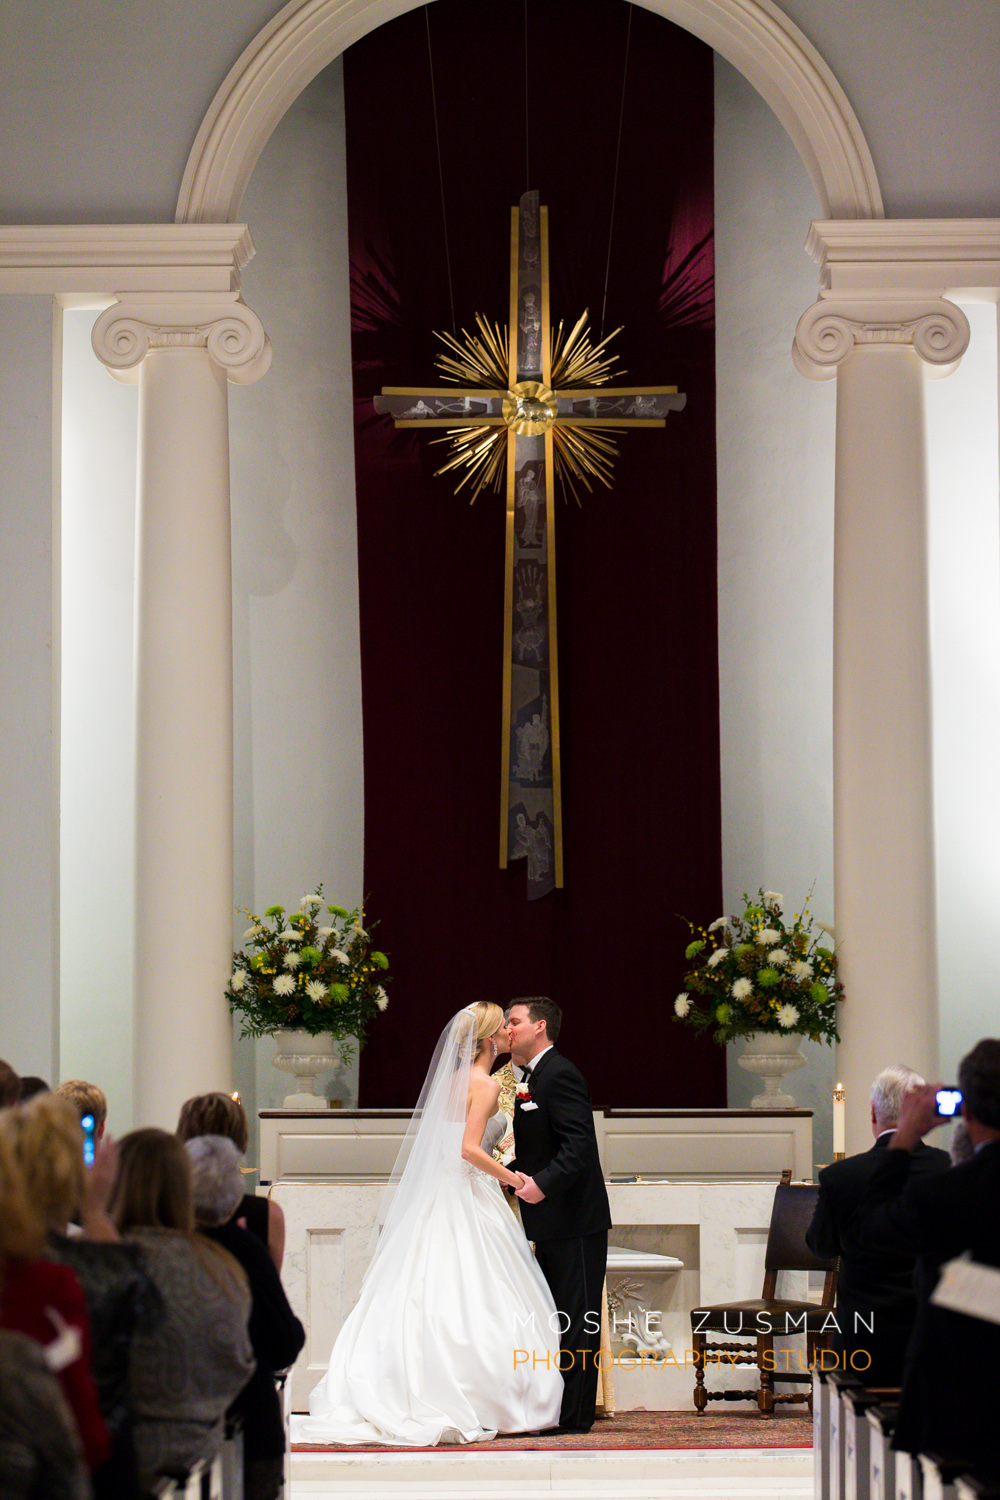 DC_Wedding_Photographer_Moshe_Zusman_Mayflower_Renaissance Washington-38.jpg